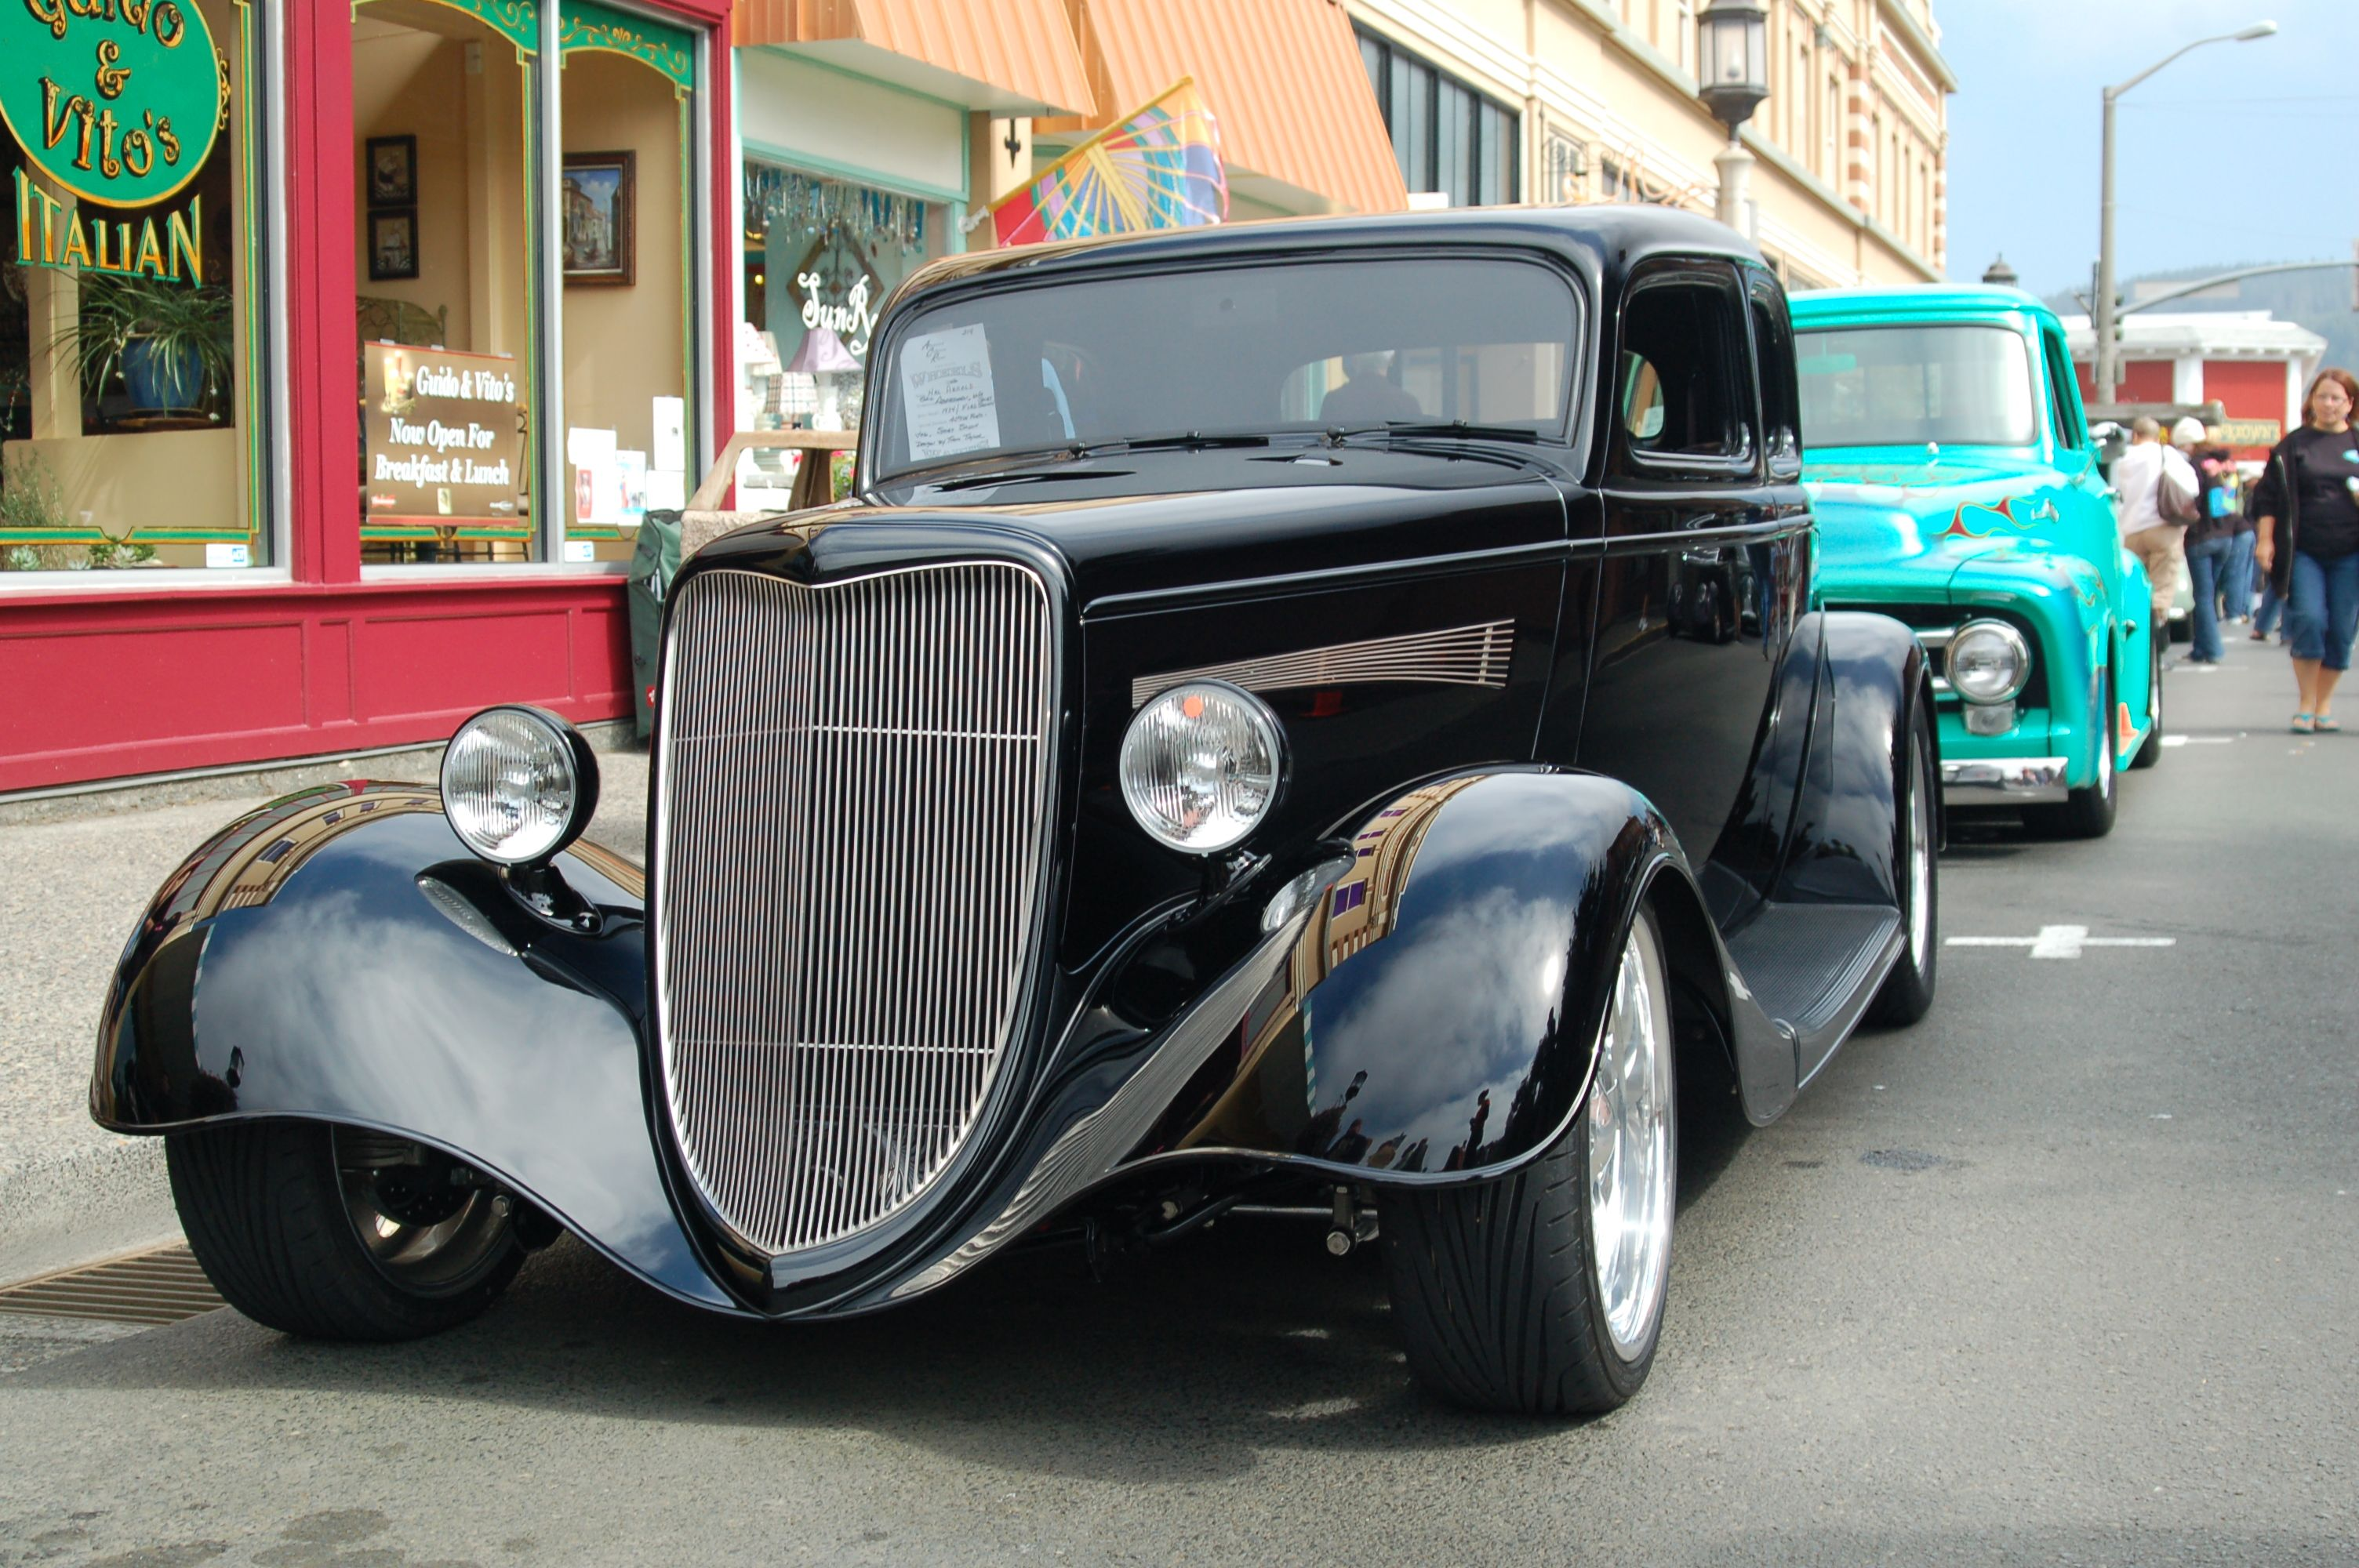 cool old car!